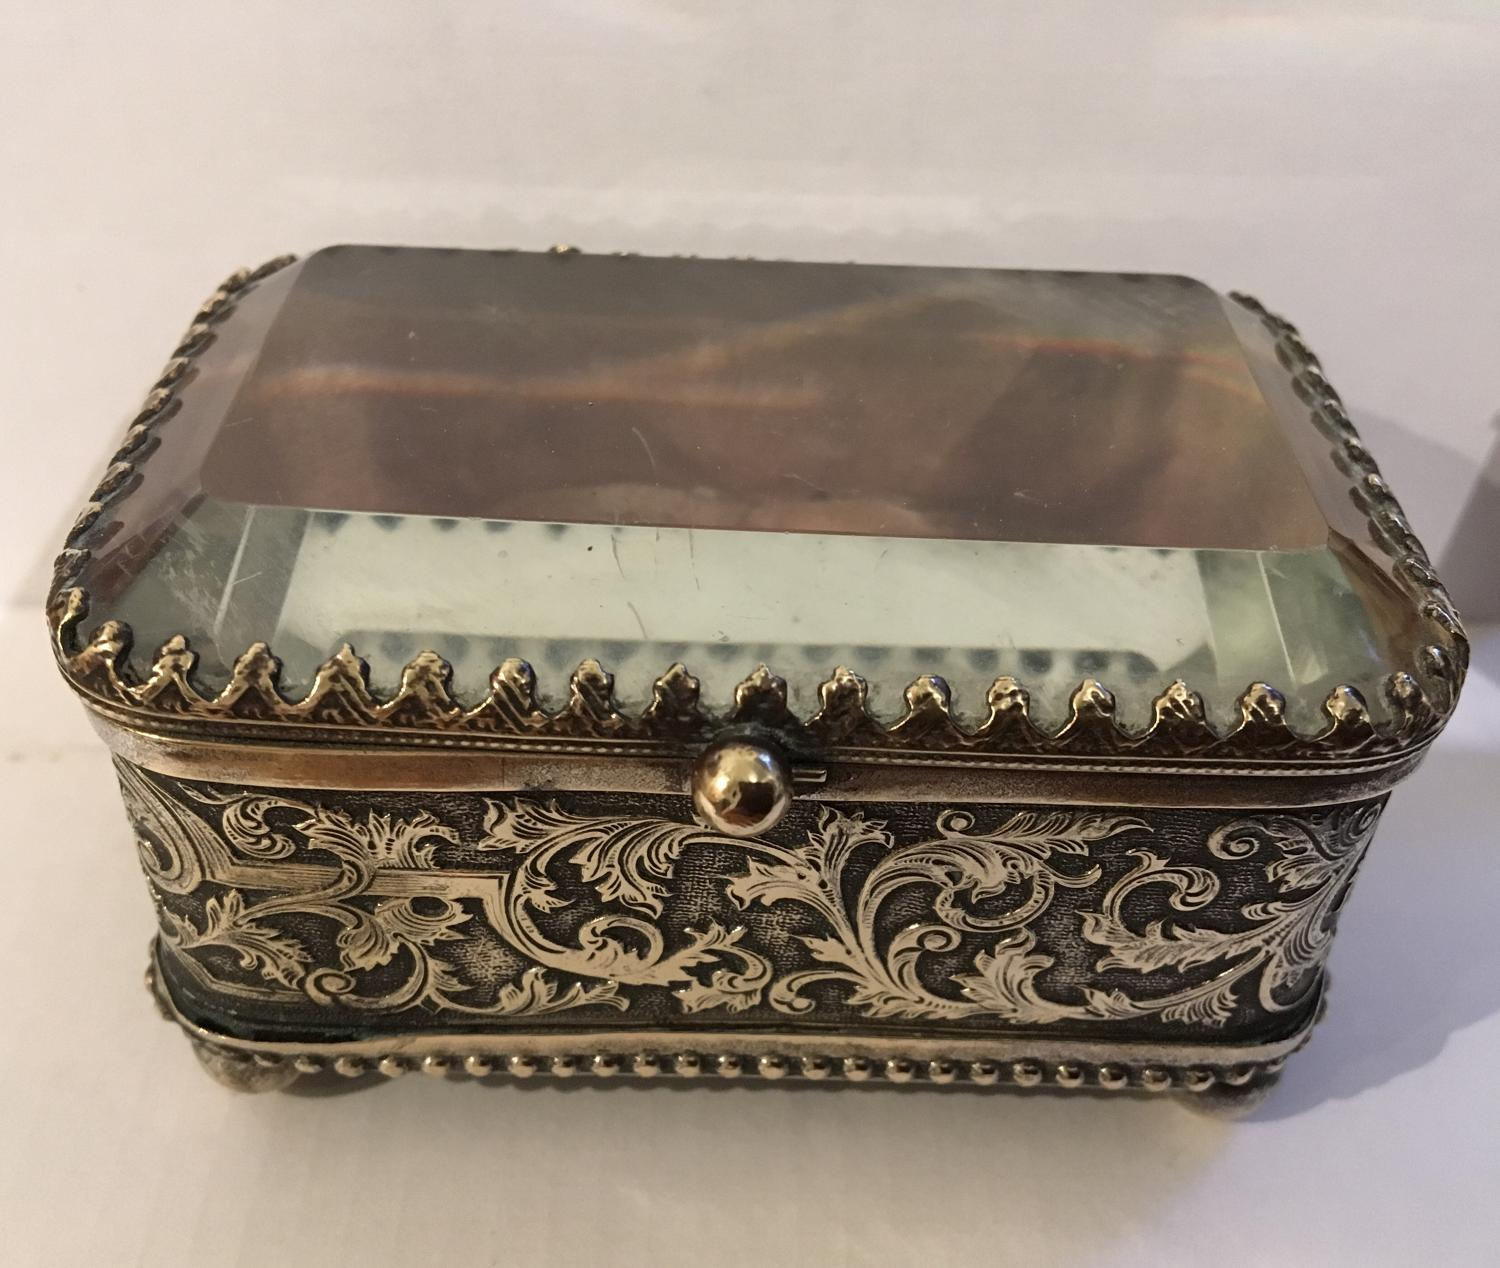 Bevelled glass ormolu jewellery casket